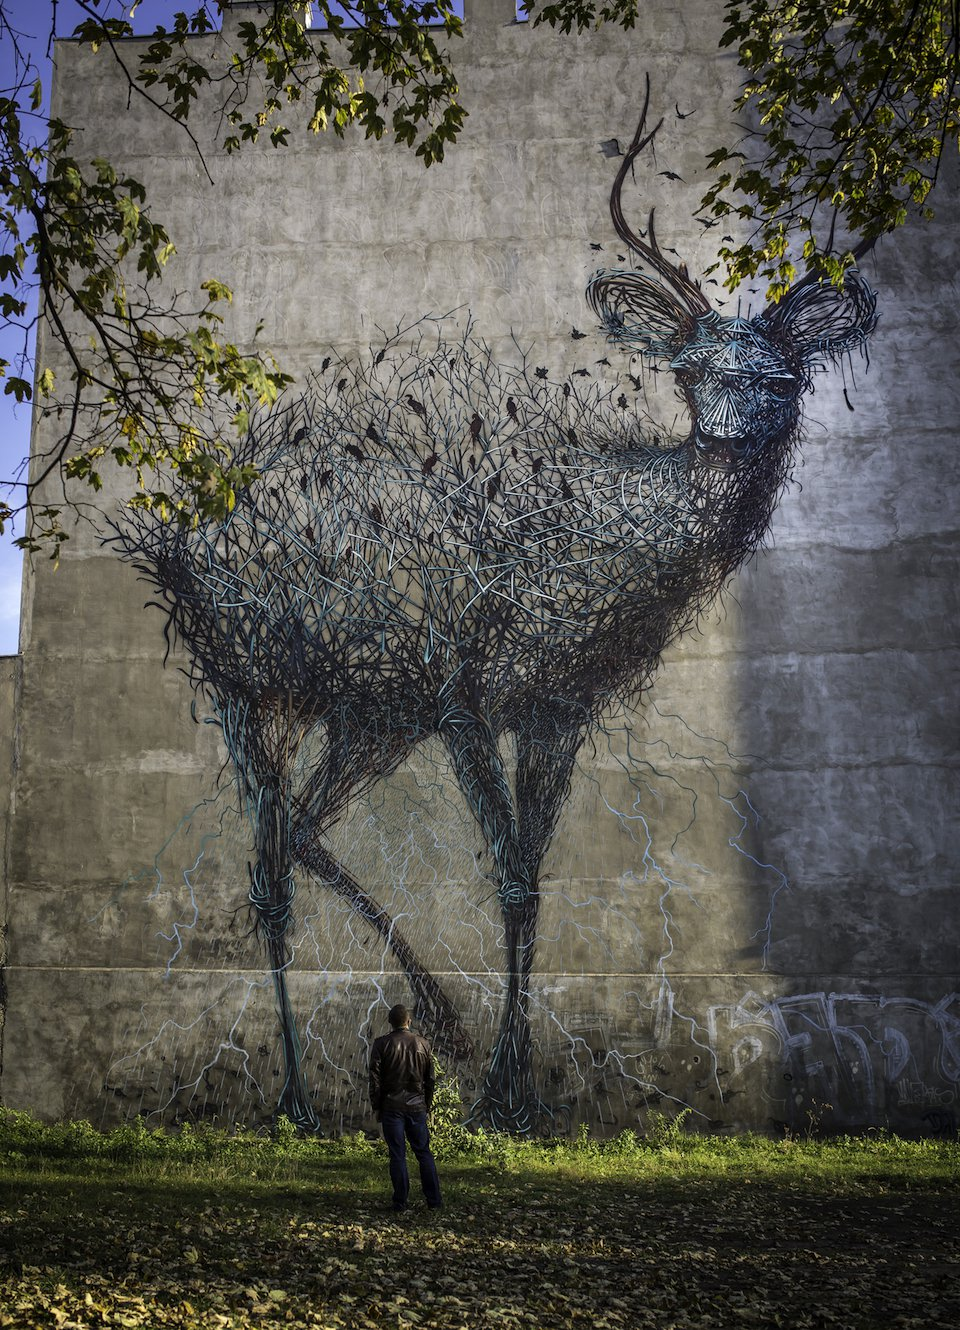 Street-Art-by-DALEAST-in-Lodz-Poland-in-for-Galeria-Urban-Forms-projec